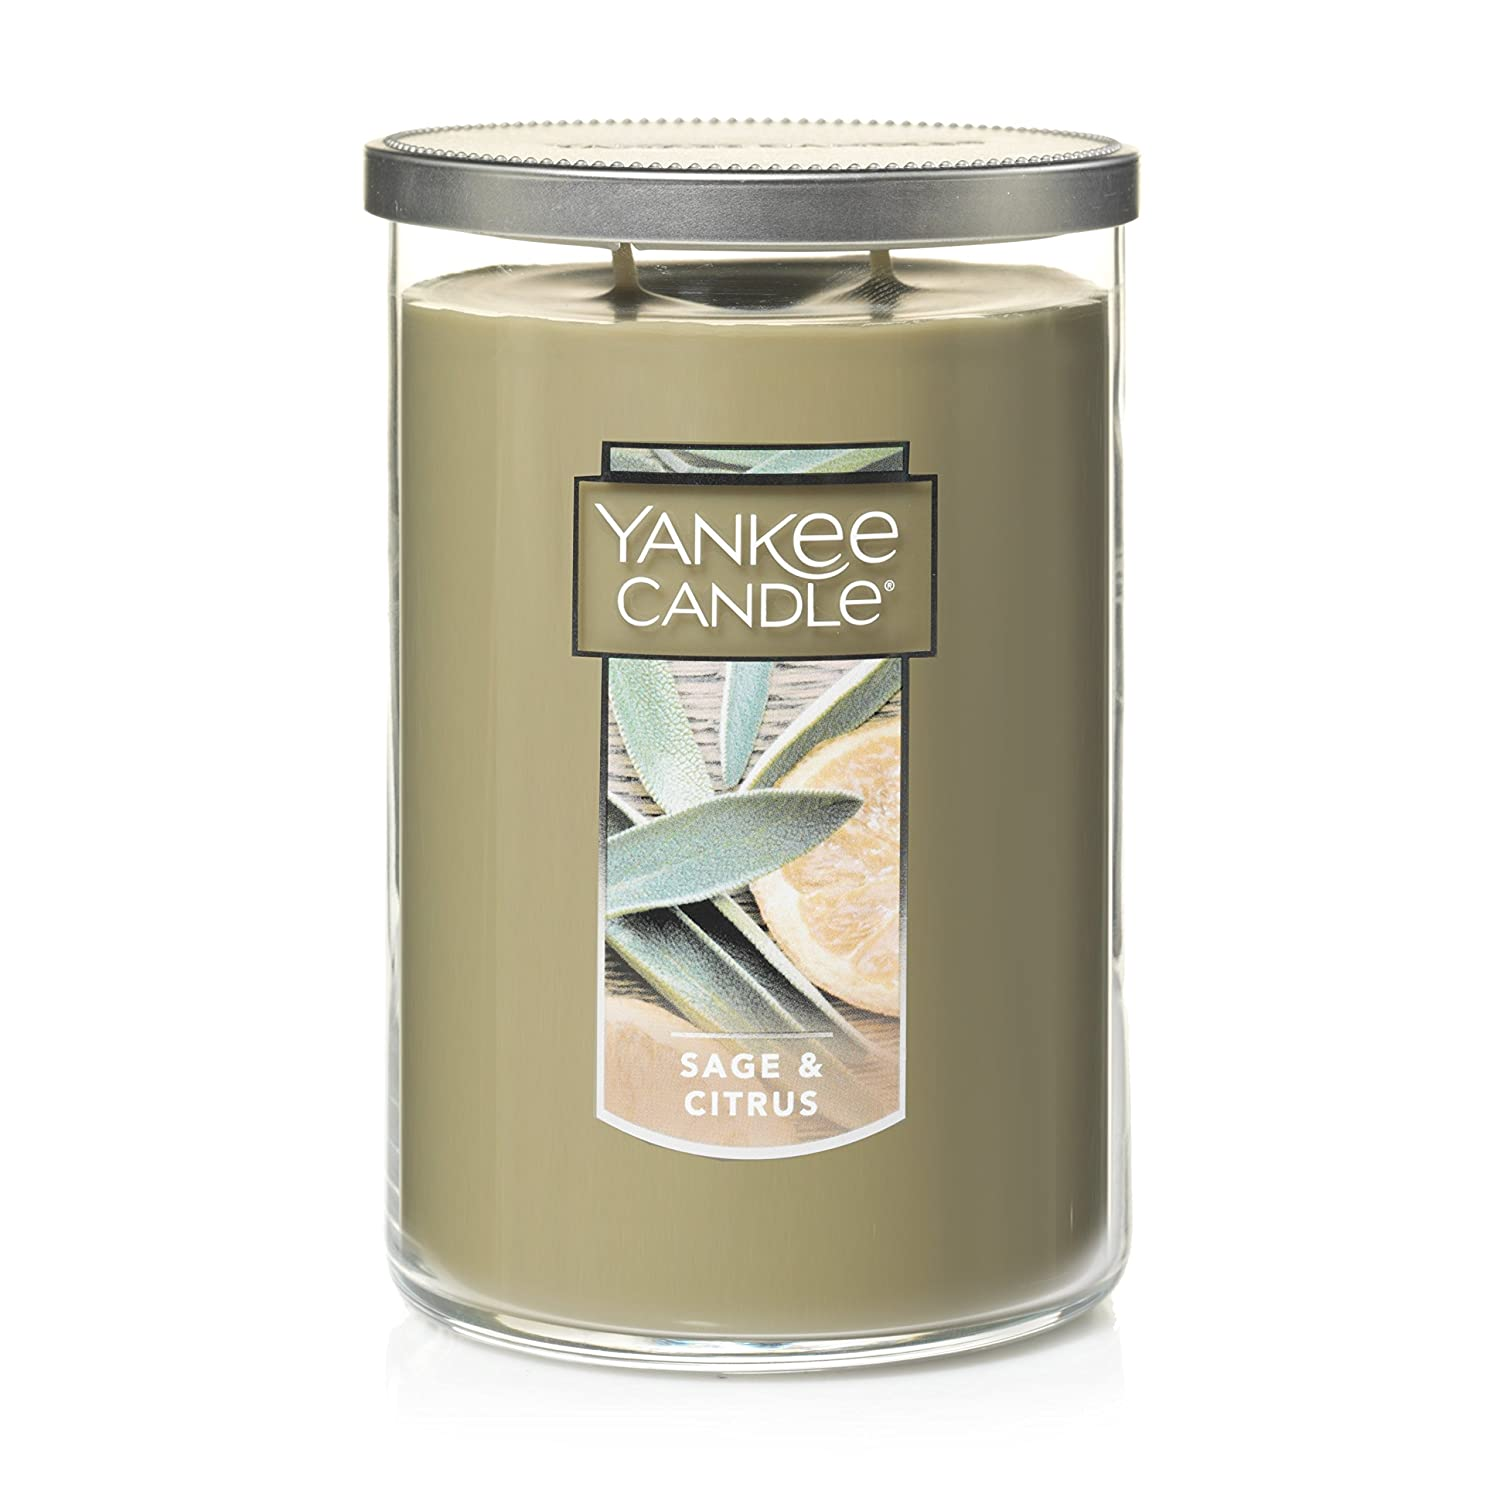 Yankee Candle Large Jar 2 Wick Candle Sage & Citrus Scented Tumbler Candle Premium Grade Candle Wax with up to 110 Hour Burn Time